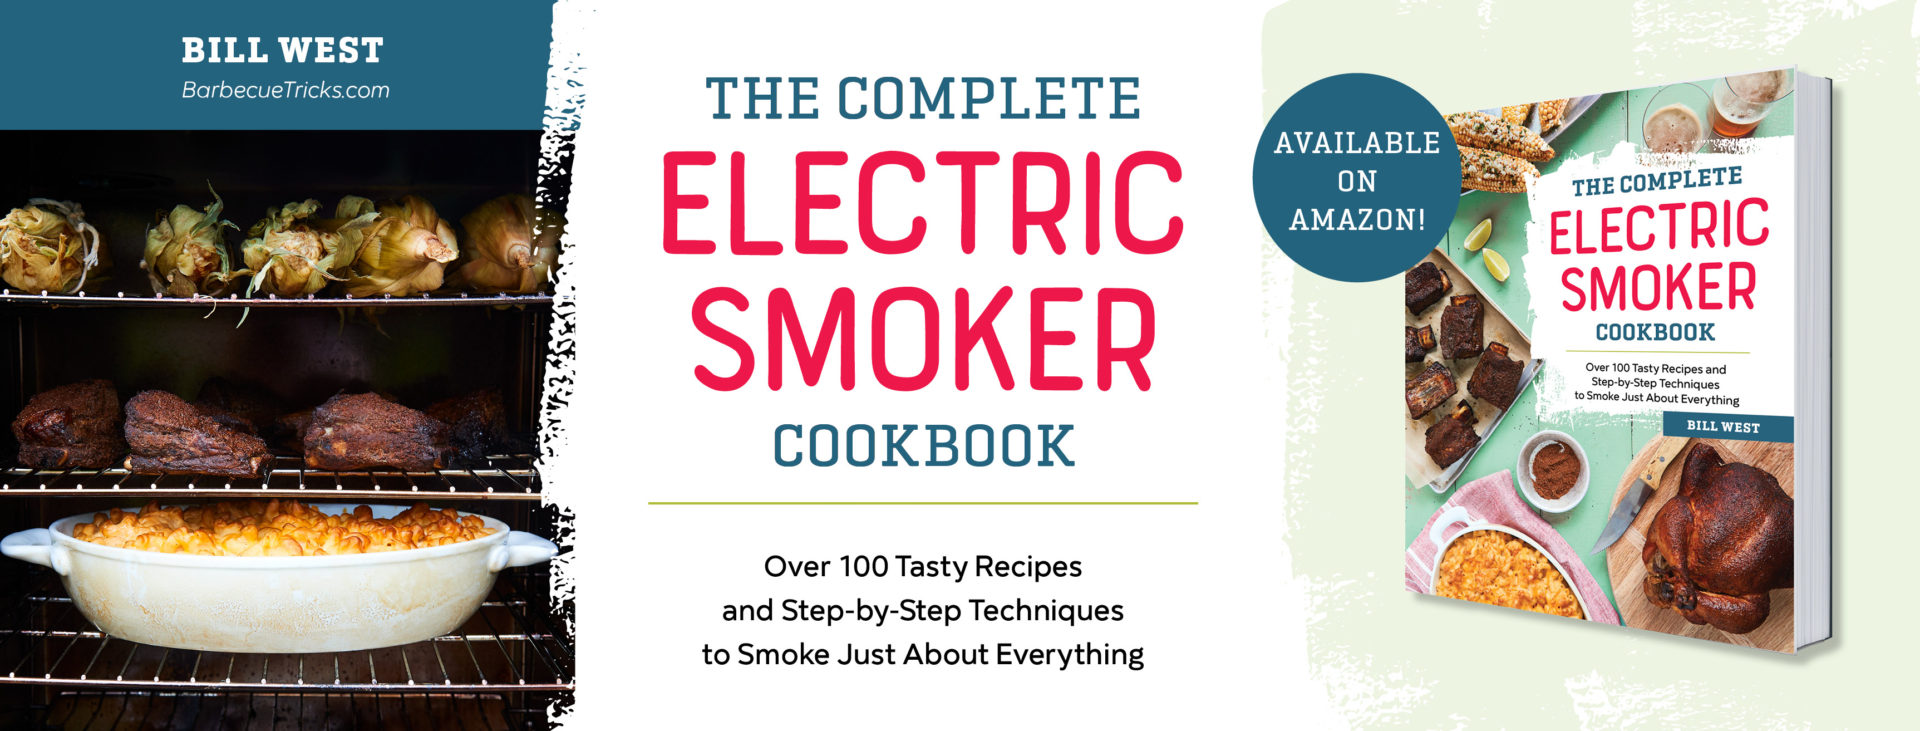 Electric smoker cookbook barbecue tricks electric smoker cookbook forumfinder Gallery